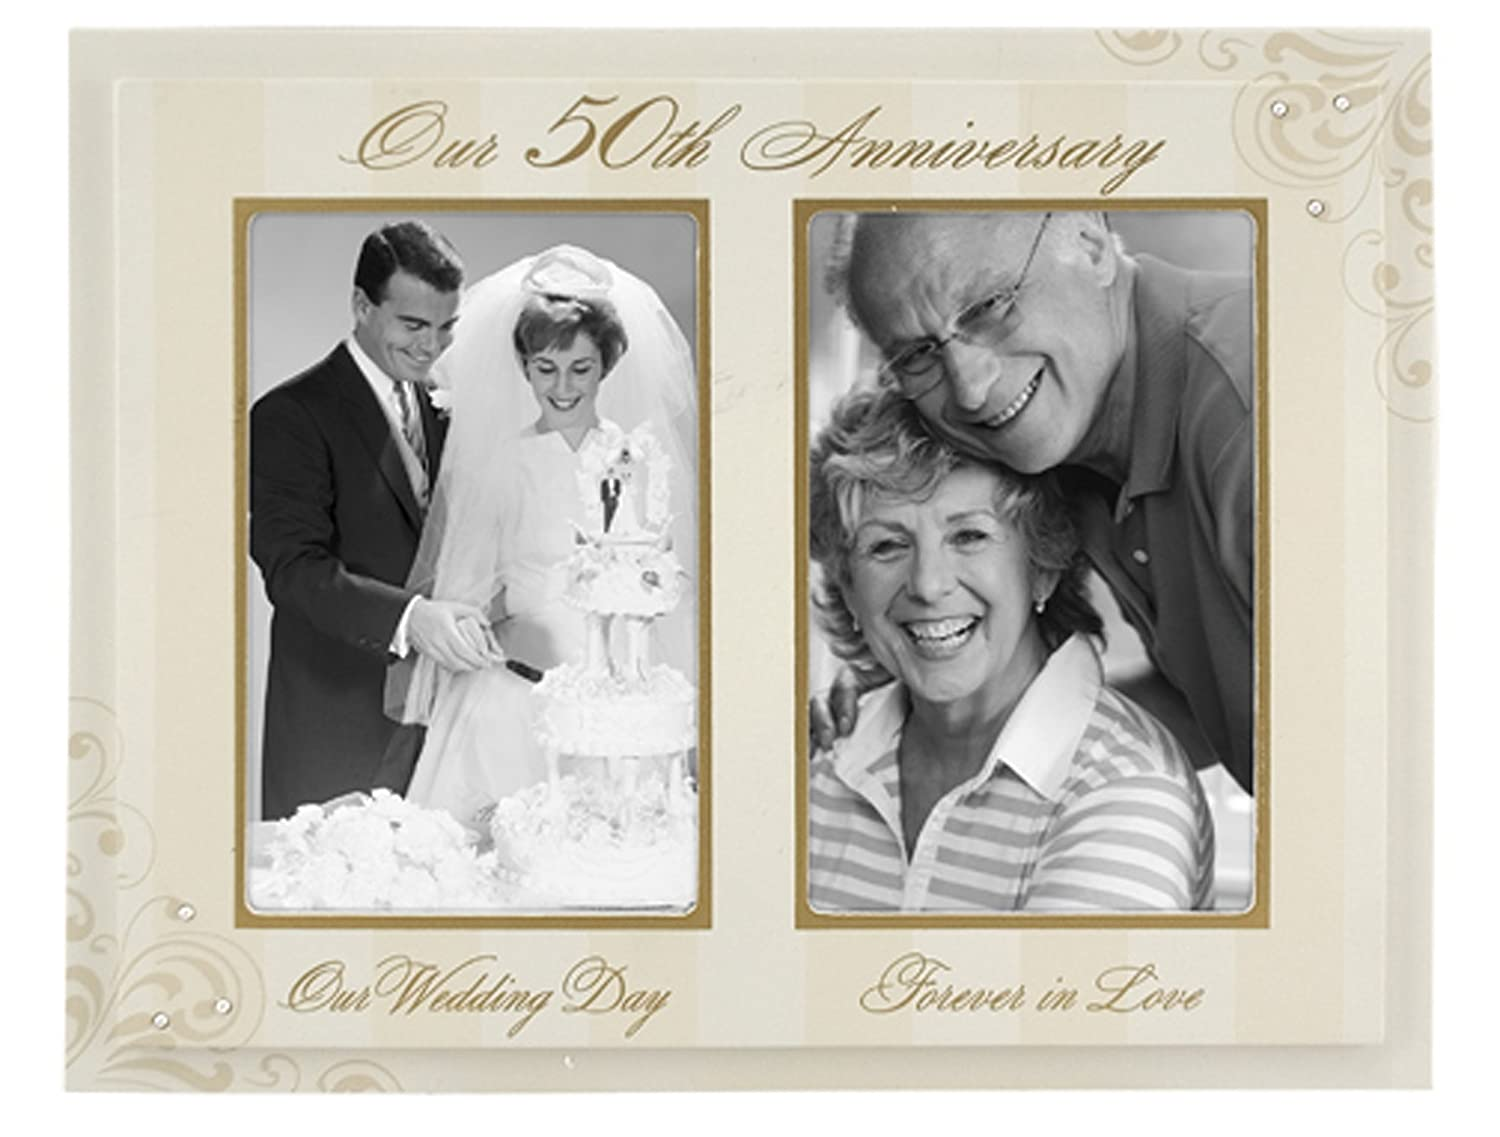 Wedding anniversary gifts fiftieth wedding anniversary for Best gifts for 50th wedding anniversary